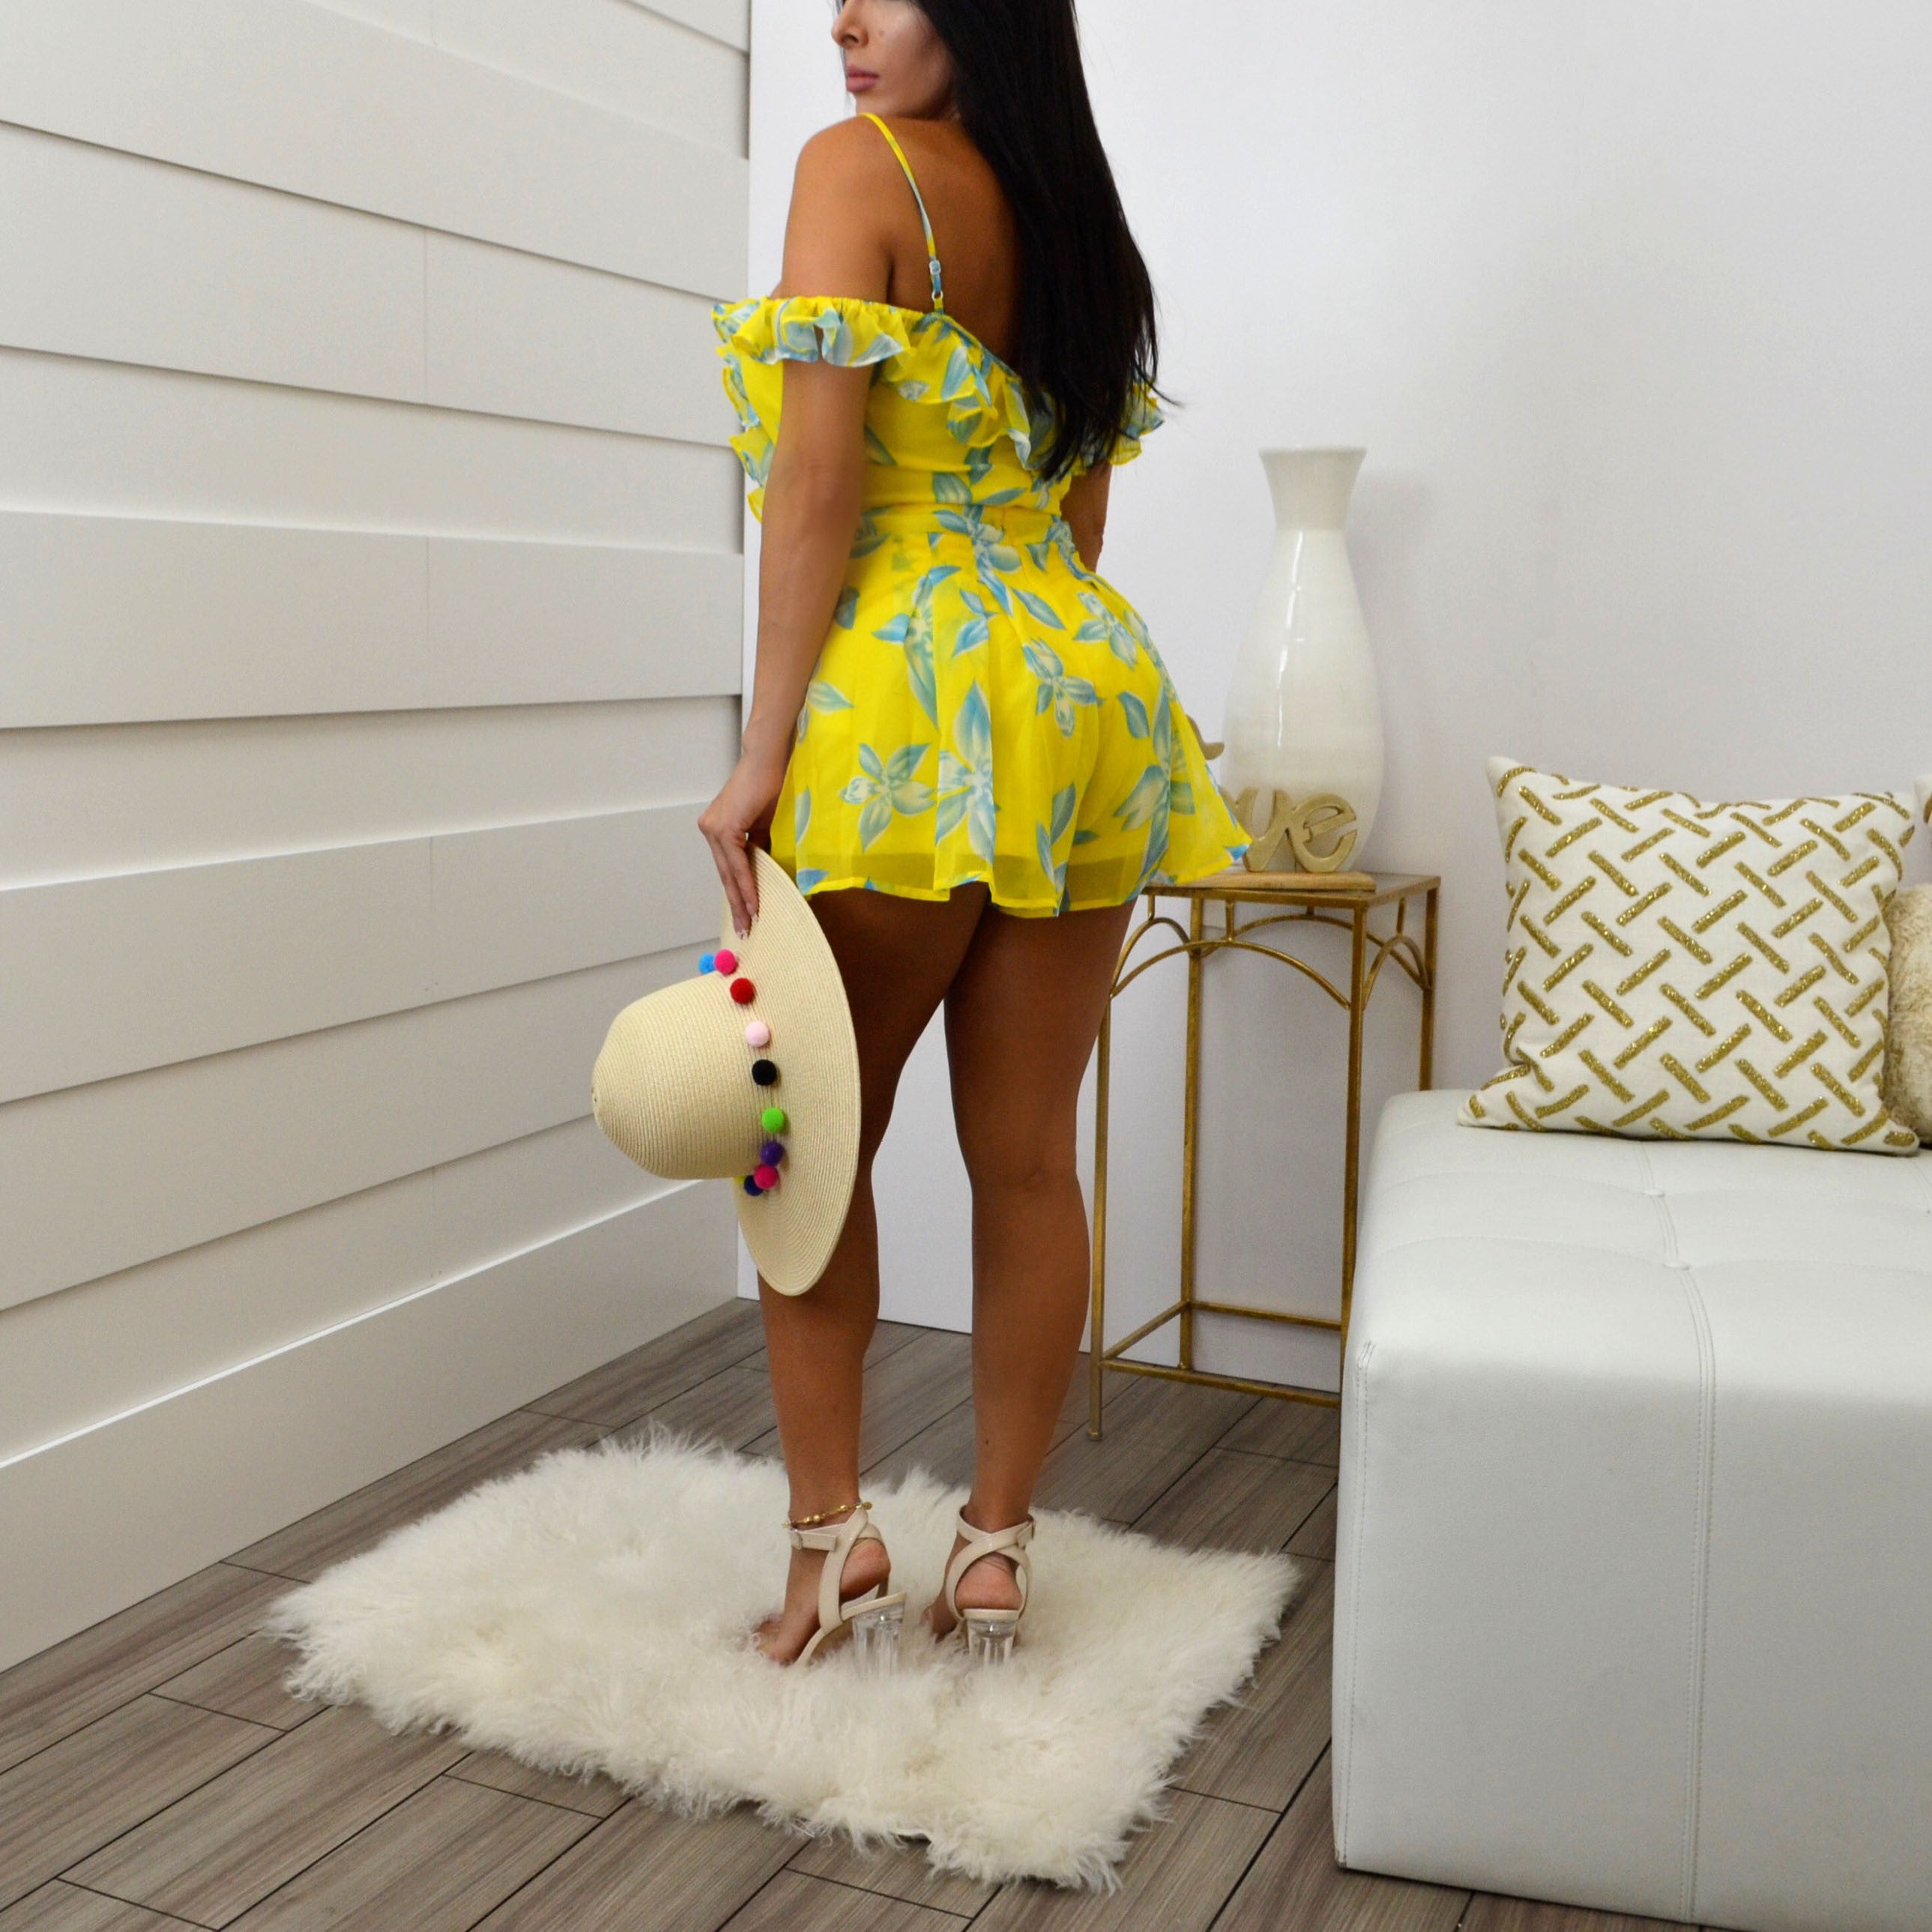 FLORAL ROMPERS YELLOW - Bacana Clothing + Shoes